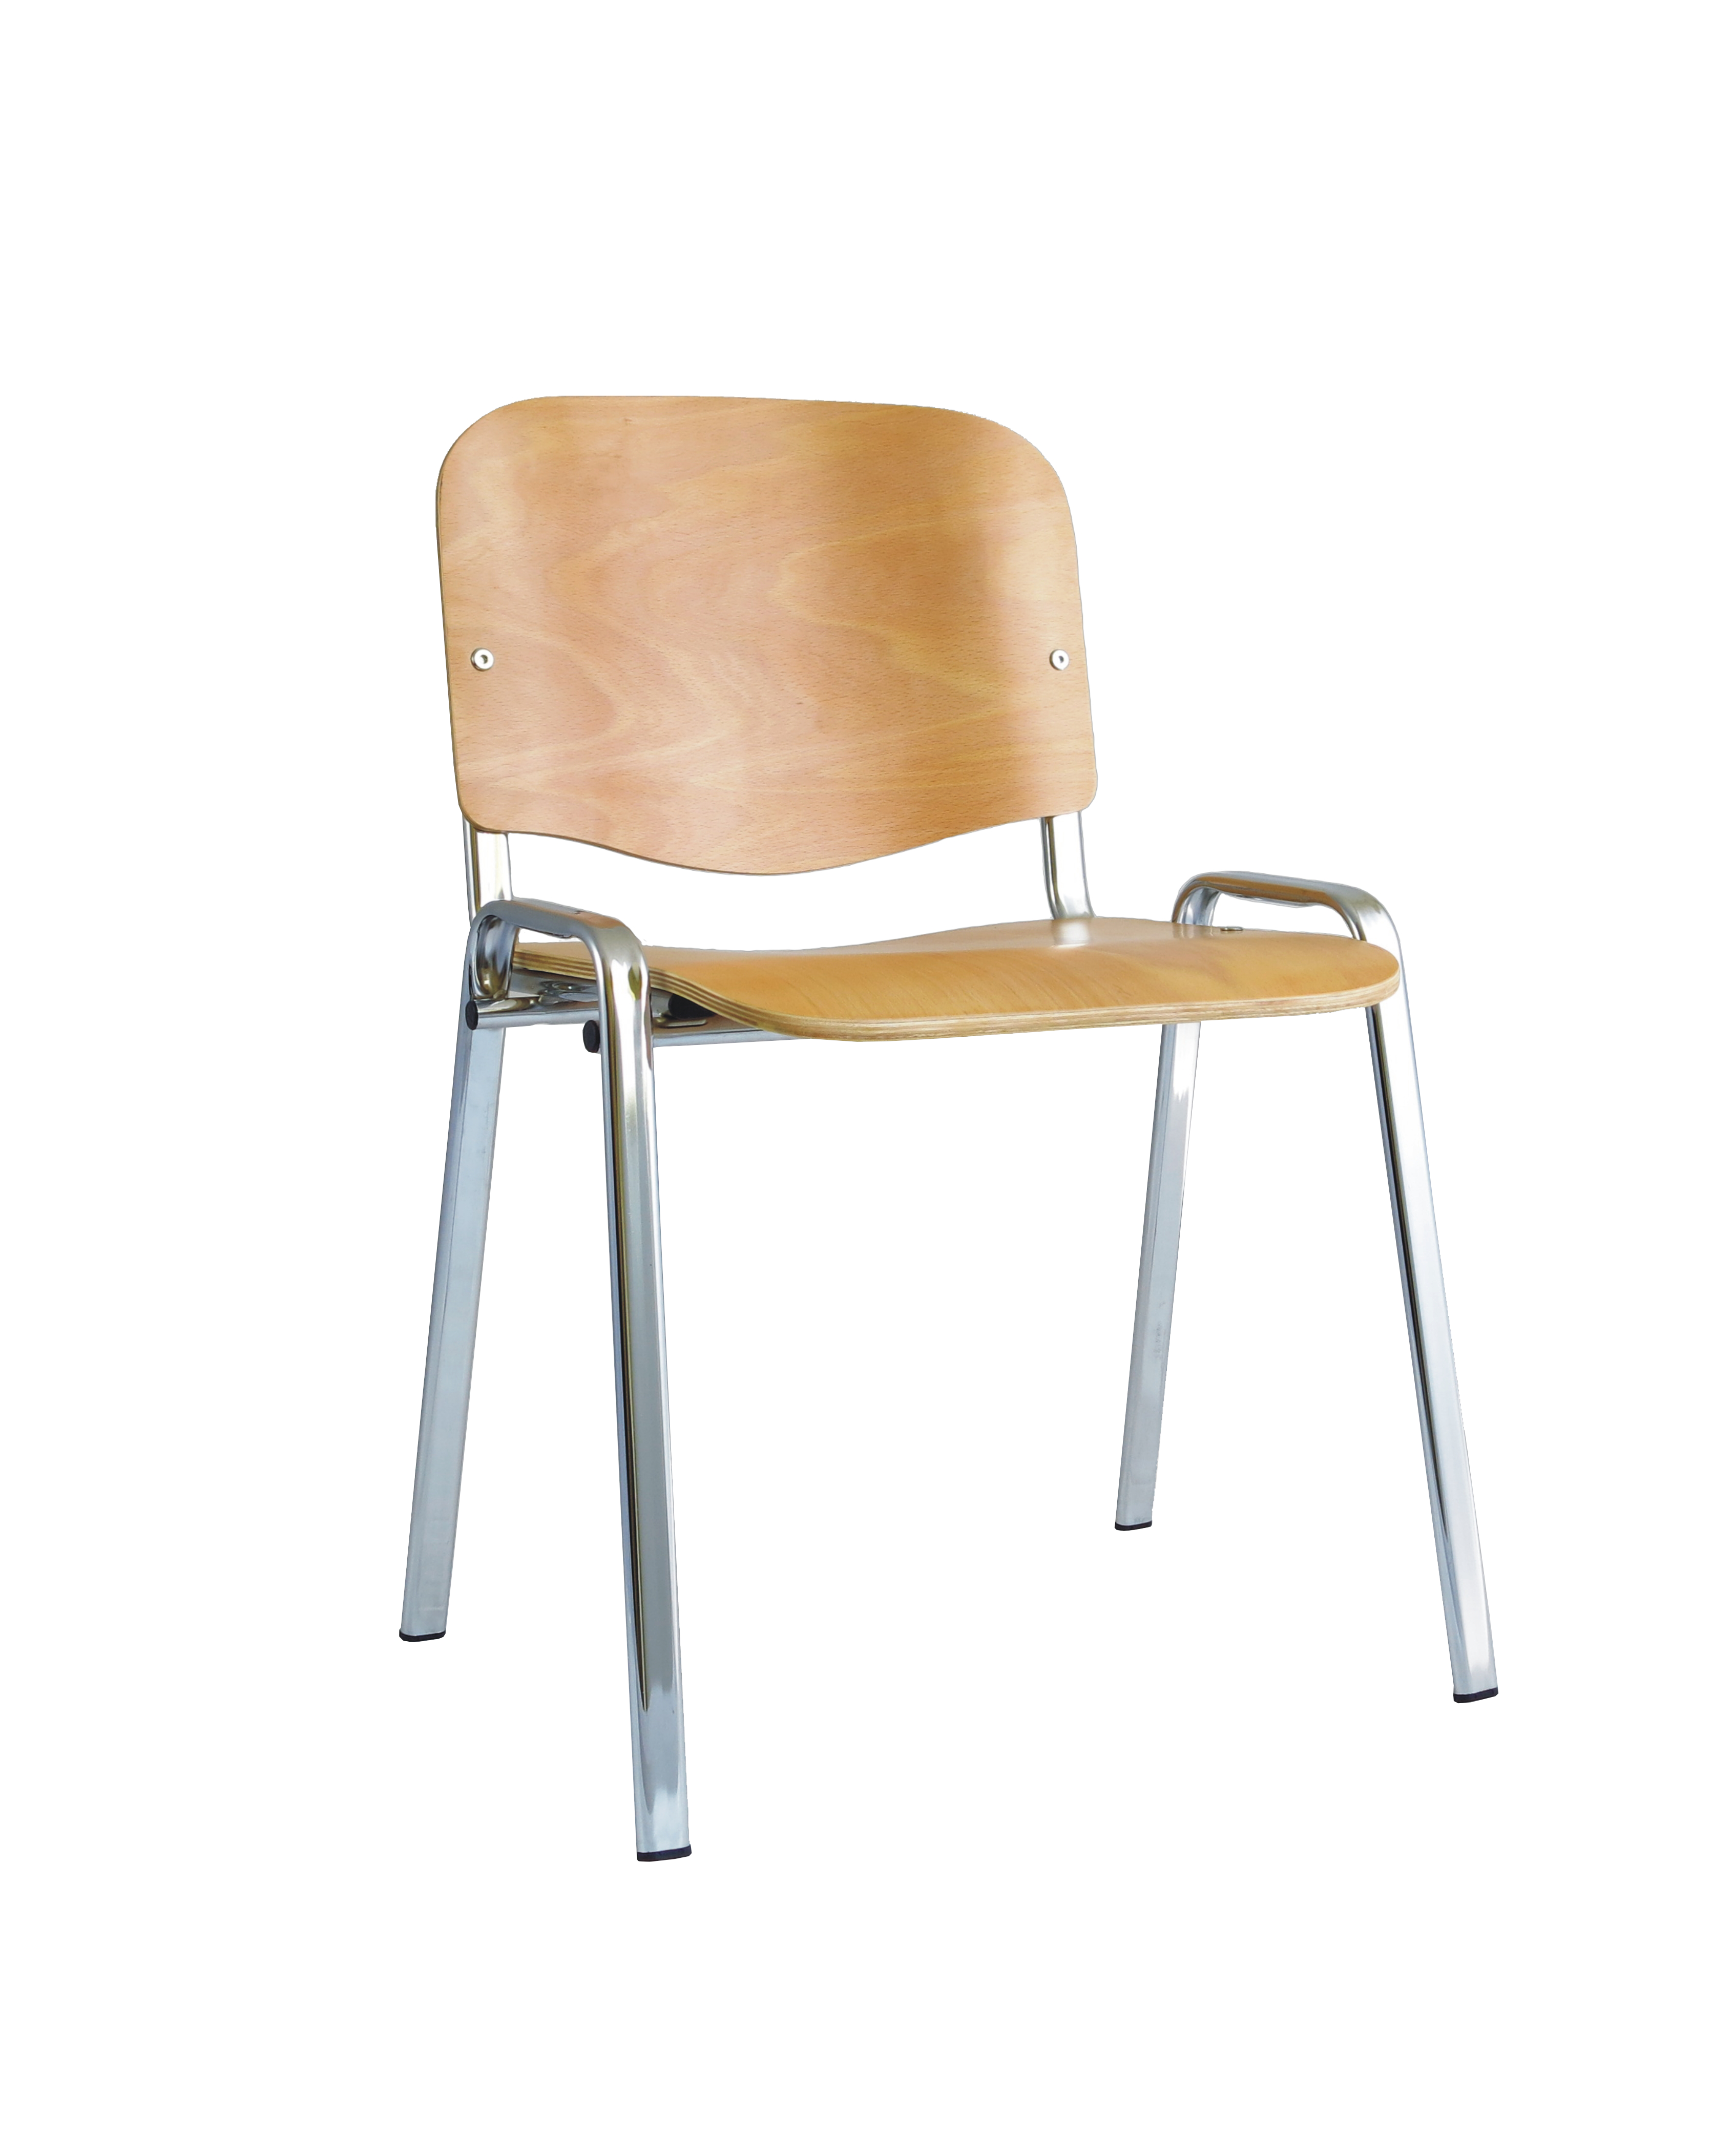 Stacking Chairs ISO Stacking Chair Beech Chrome Frame BR000066